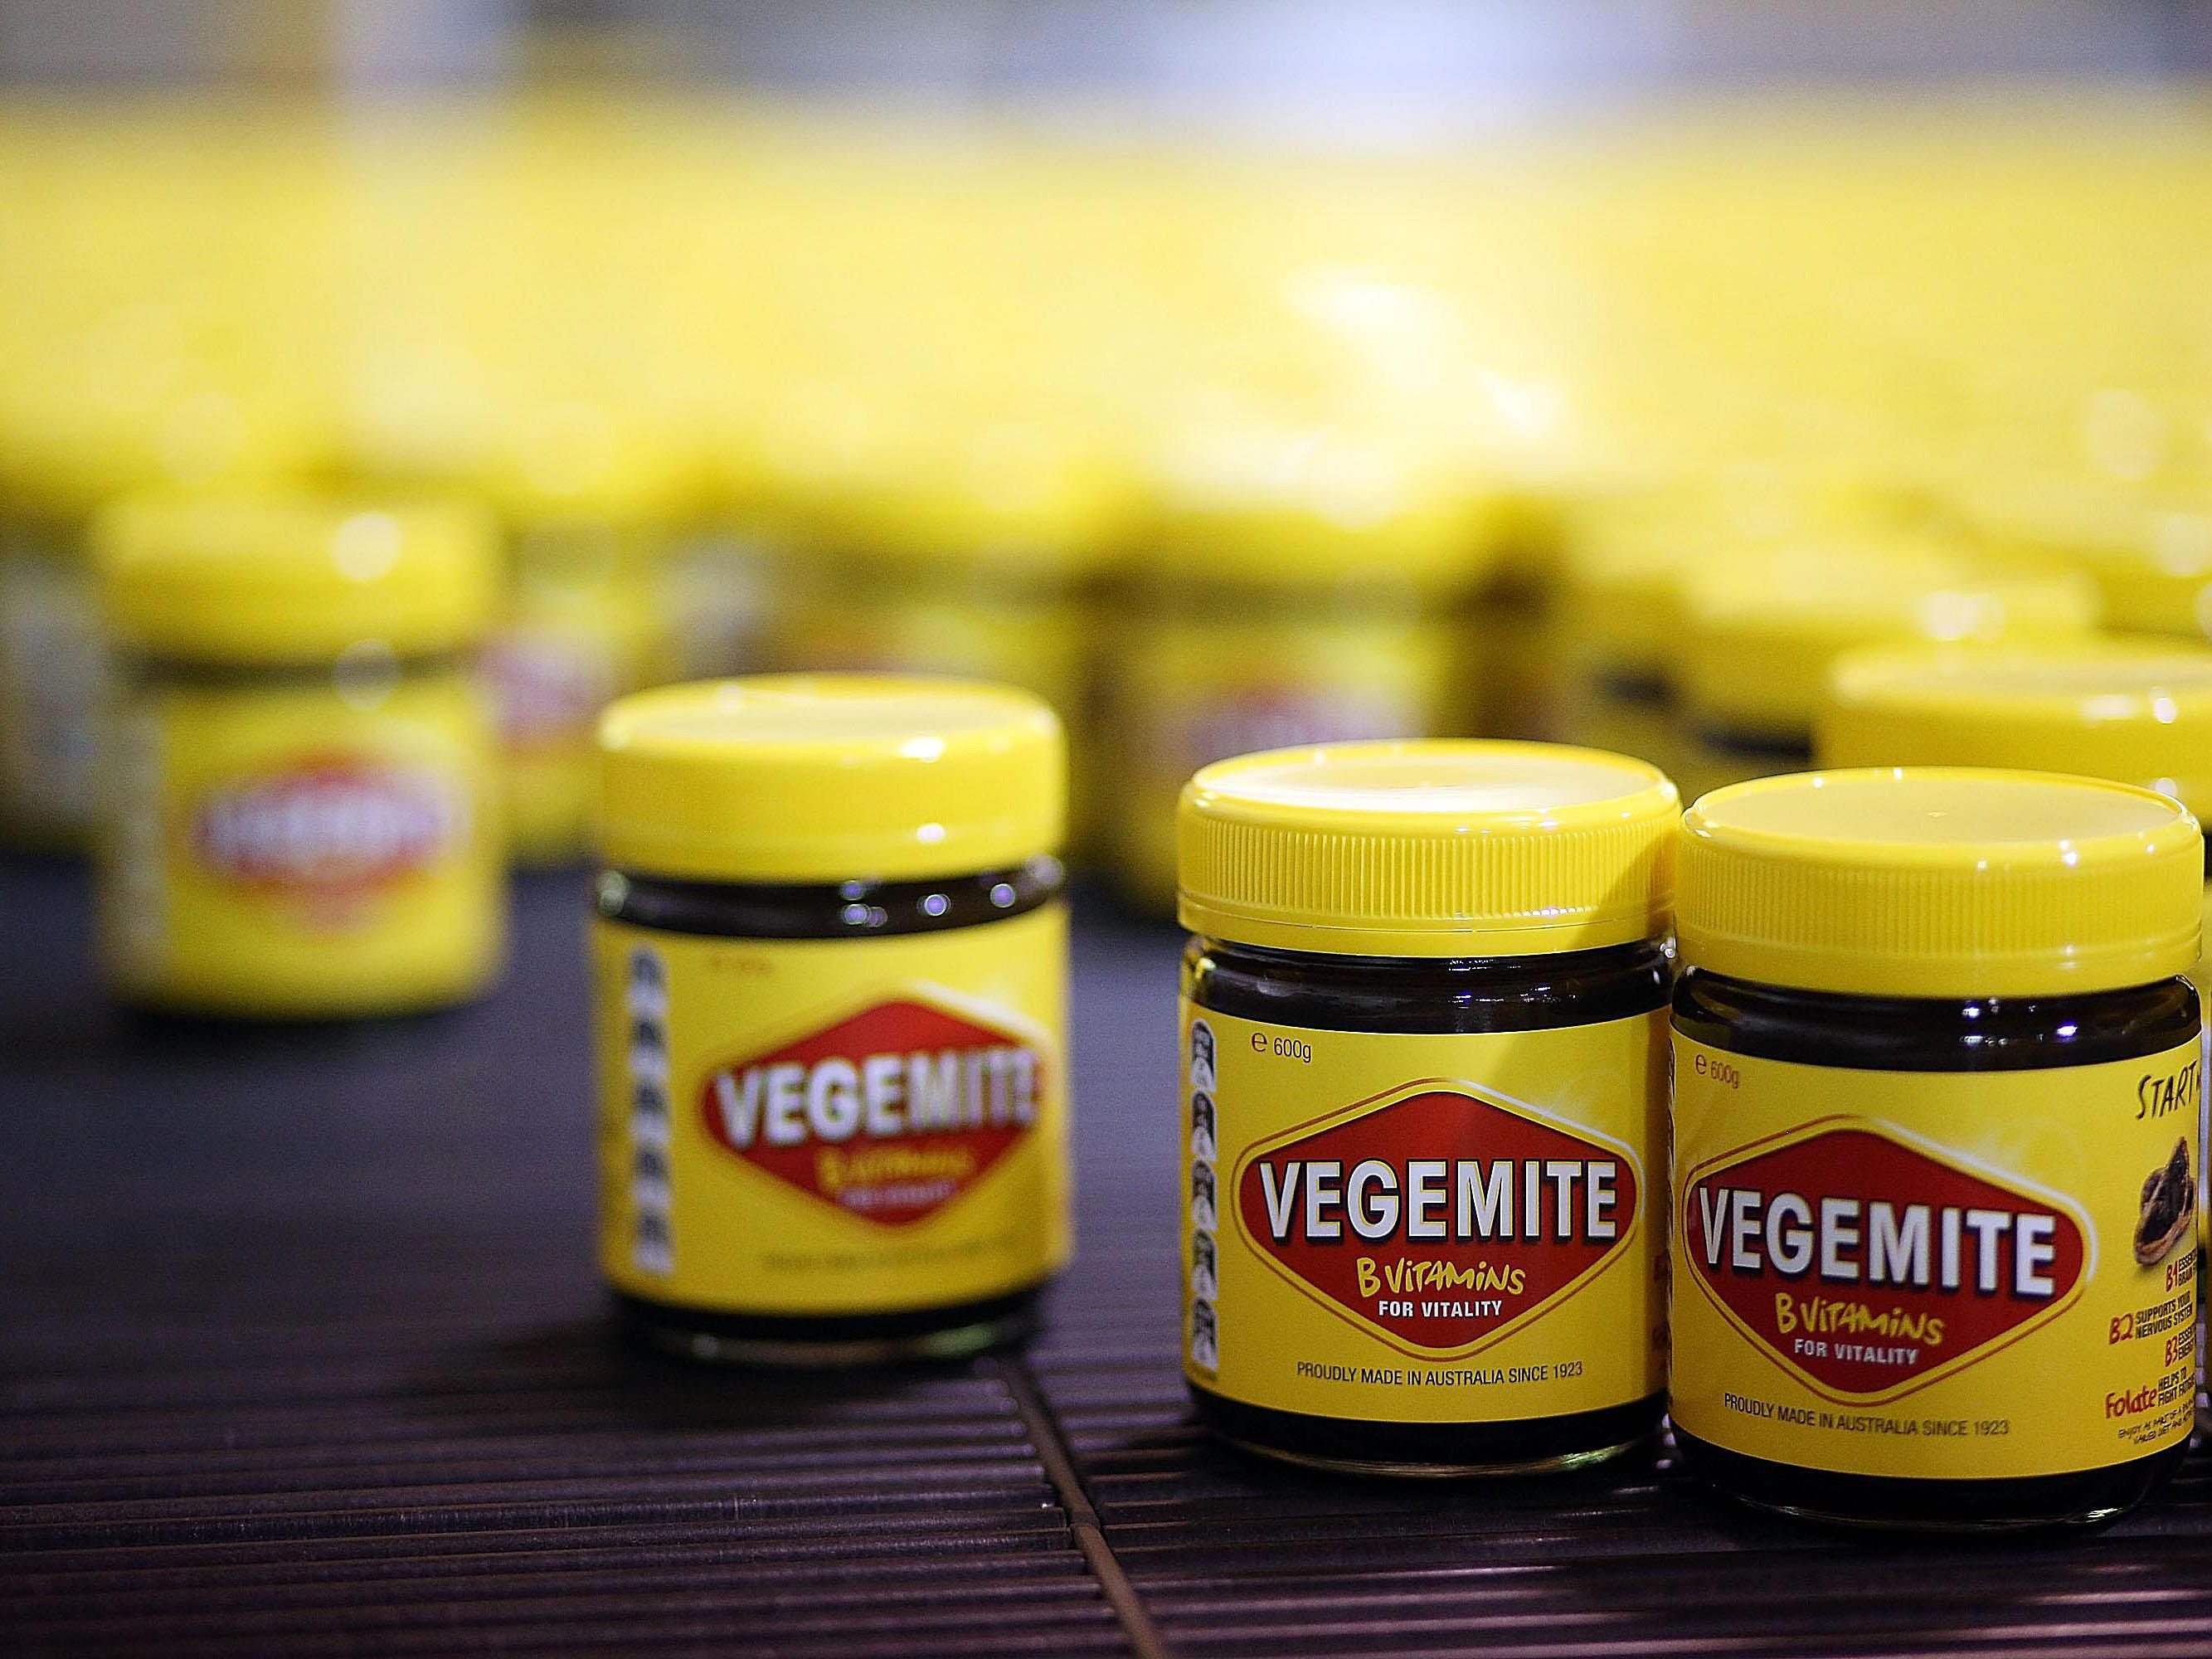 What Is Vegemite And How Is It Used